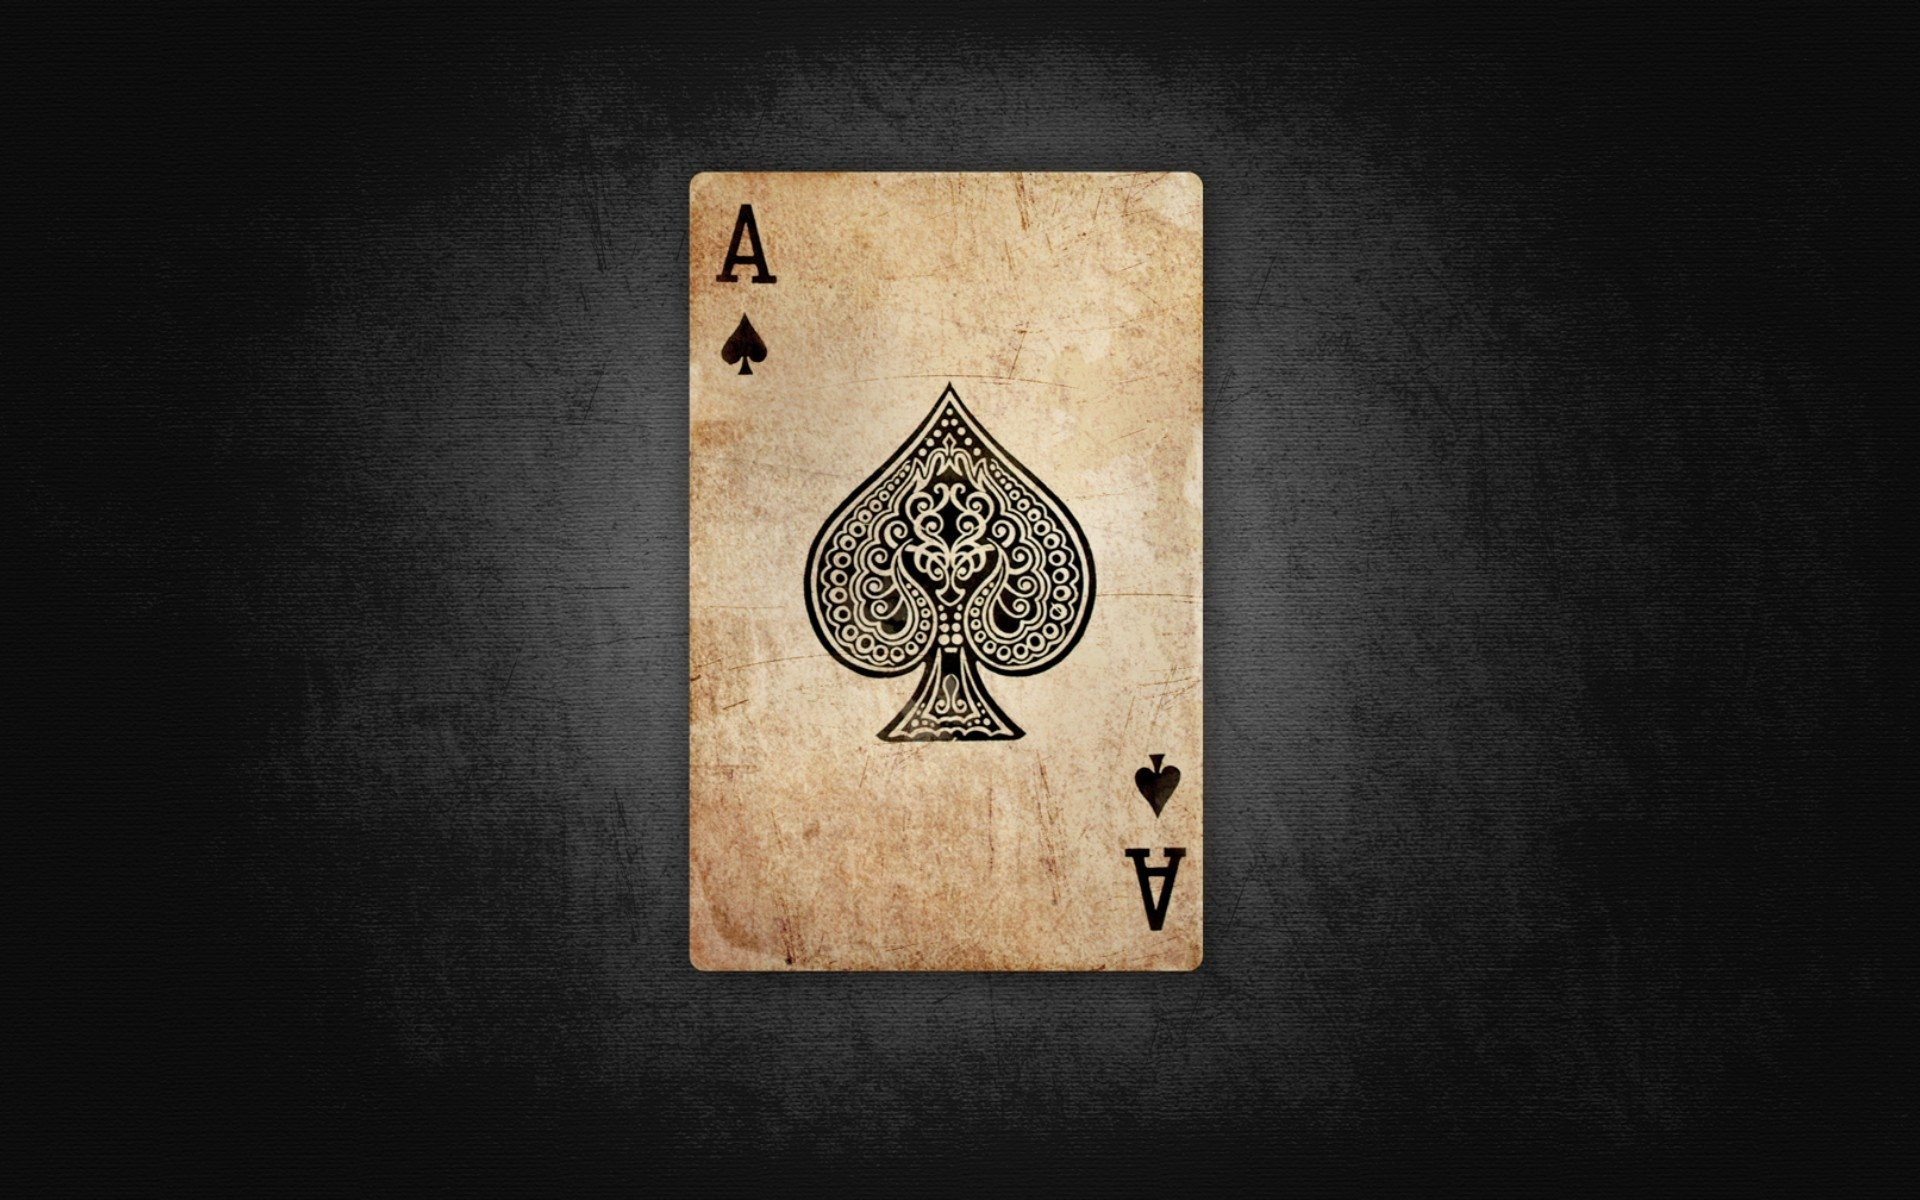 76 card hd wallpapers   backgrounds - wallpaper abyss